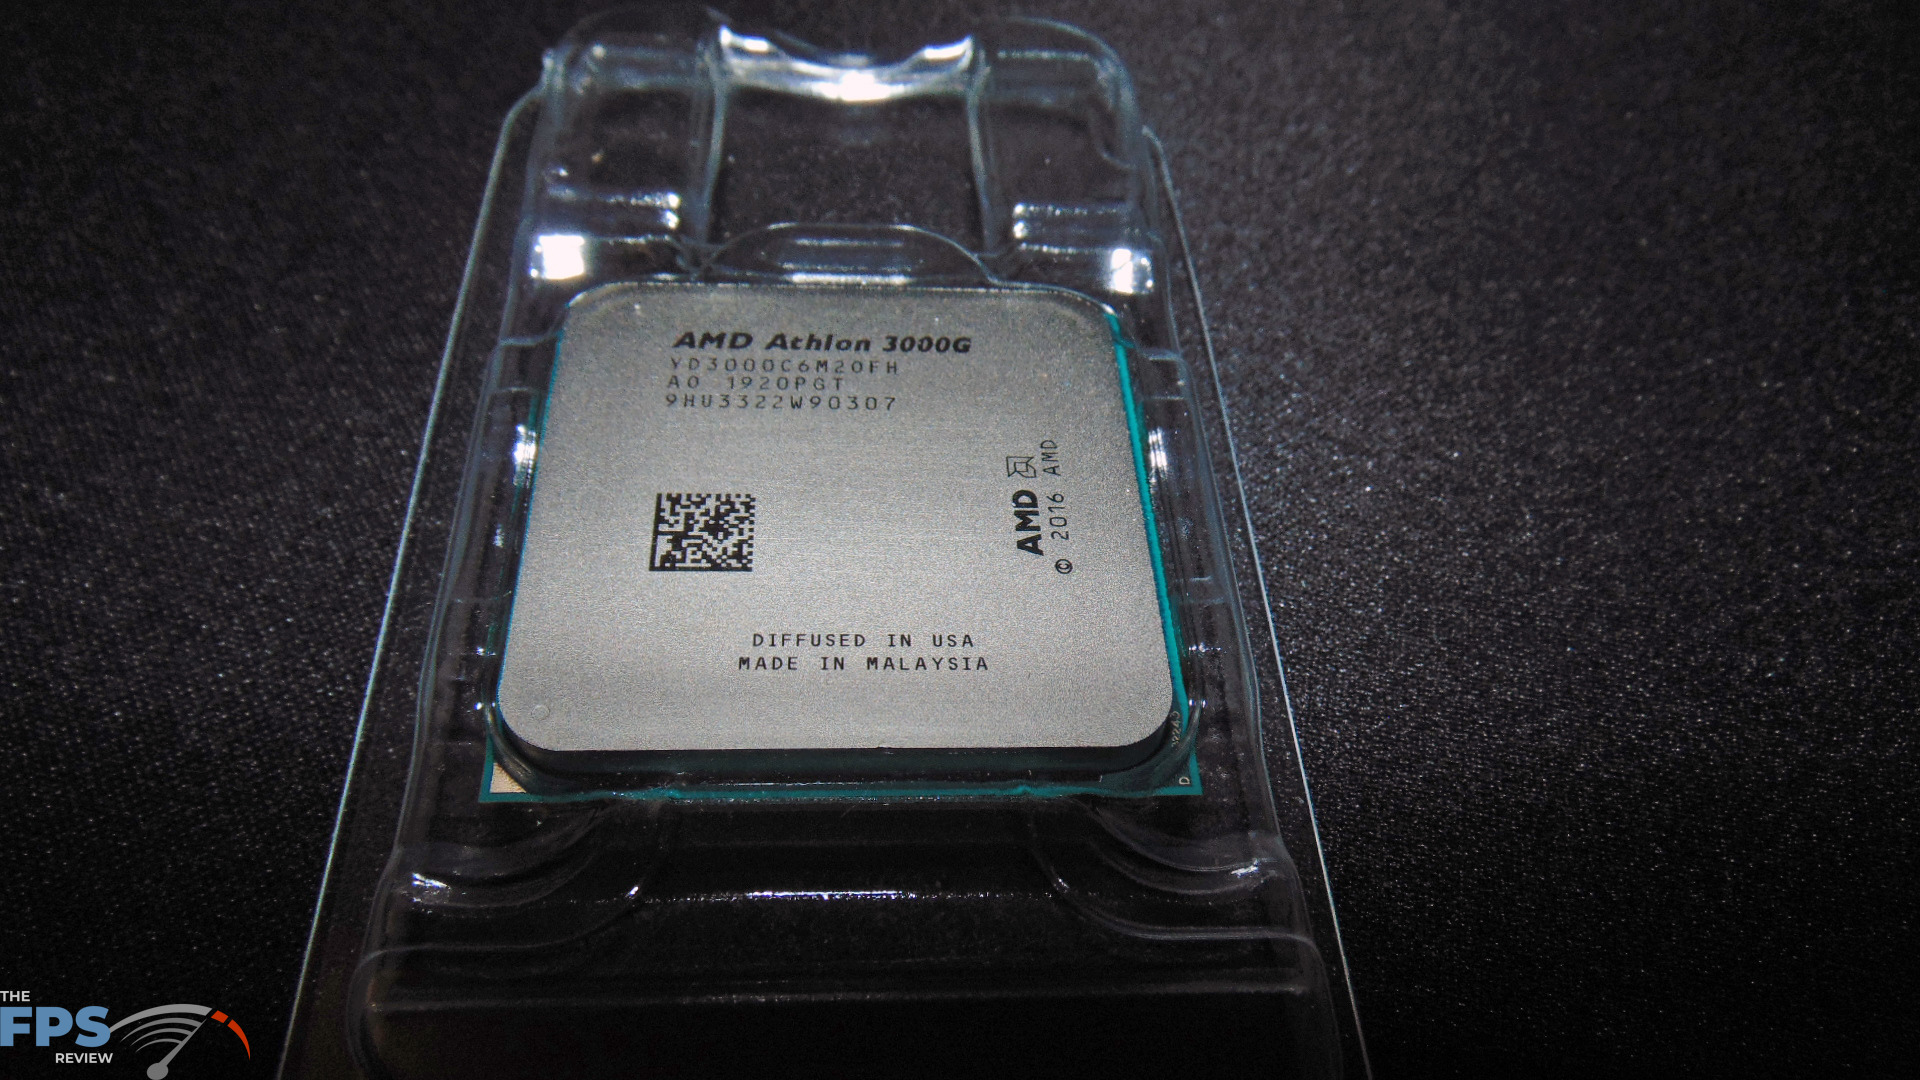 Amd Athlon 3000g Review With Overclocking The Fps Review